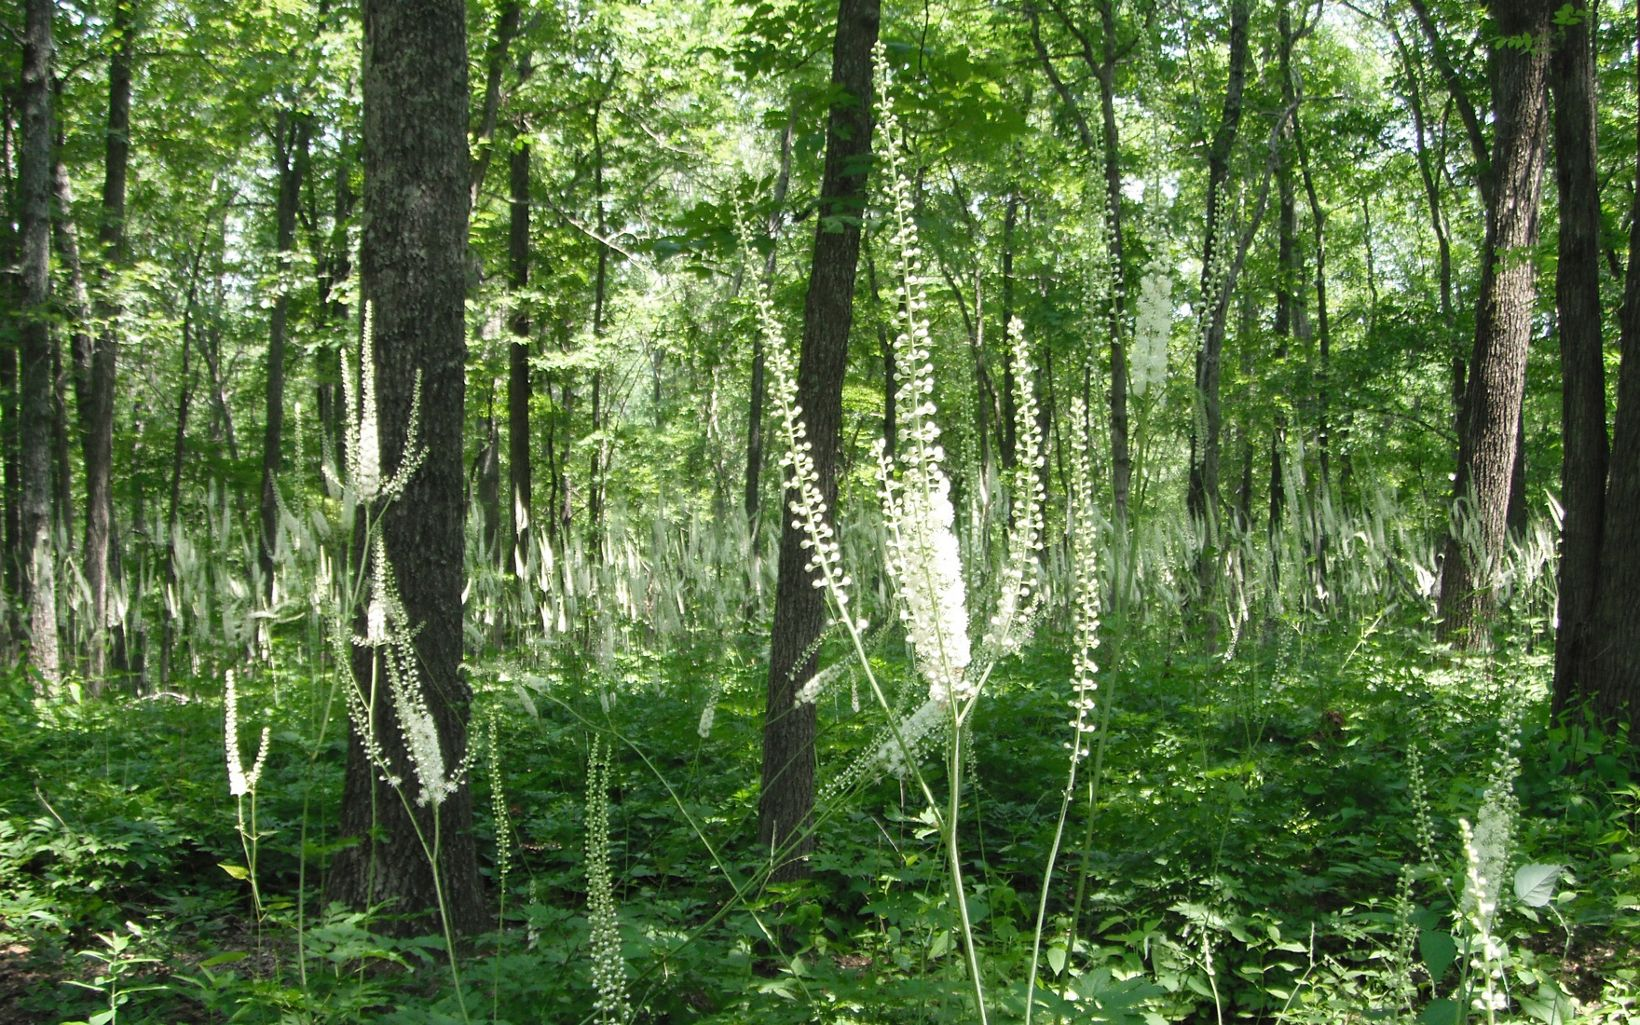 Black cohosh grows under the canopy of the trees